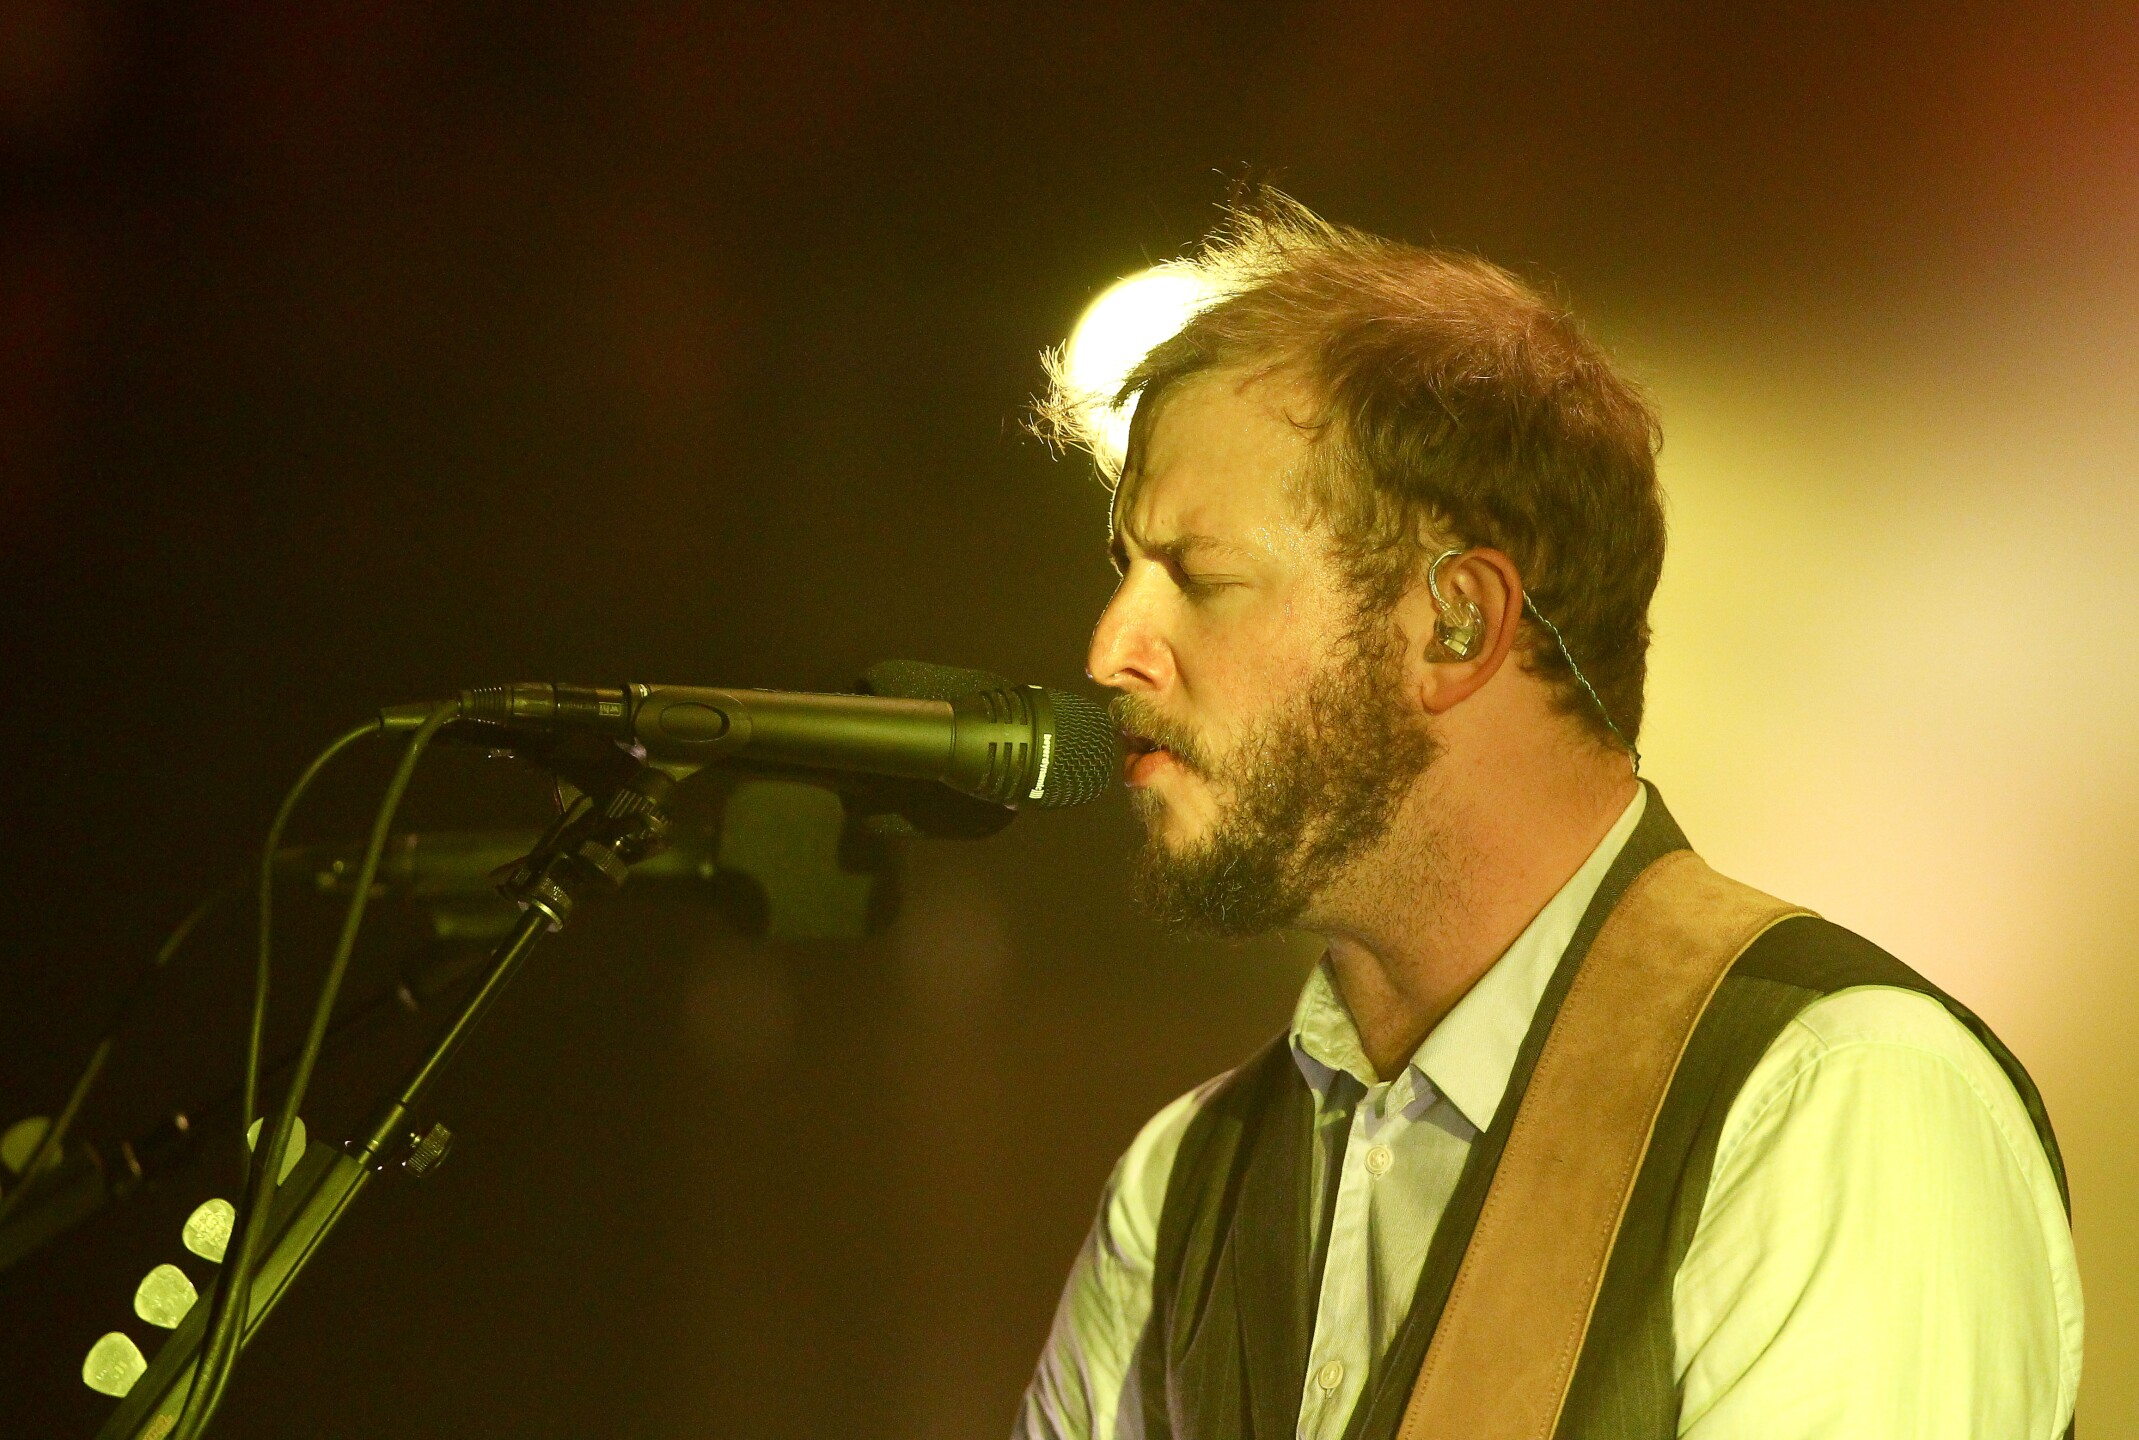 Bon Iver to perform June 29 at Summerfest